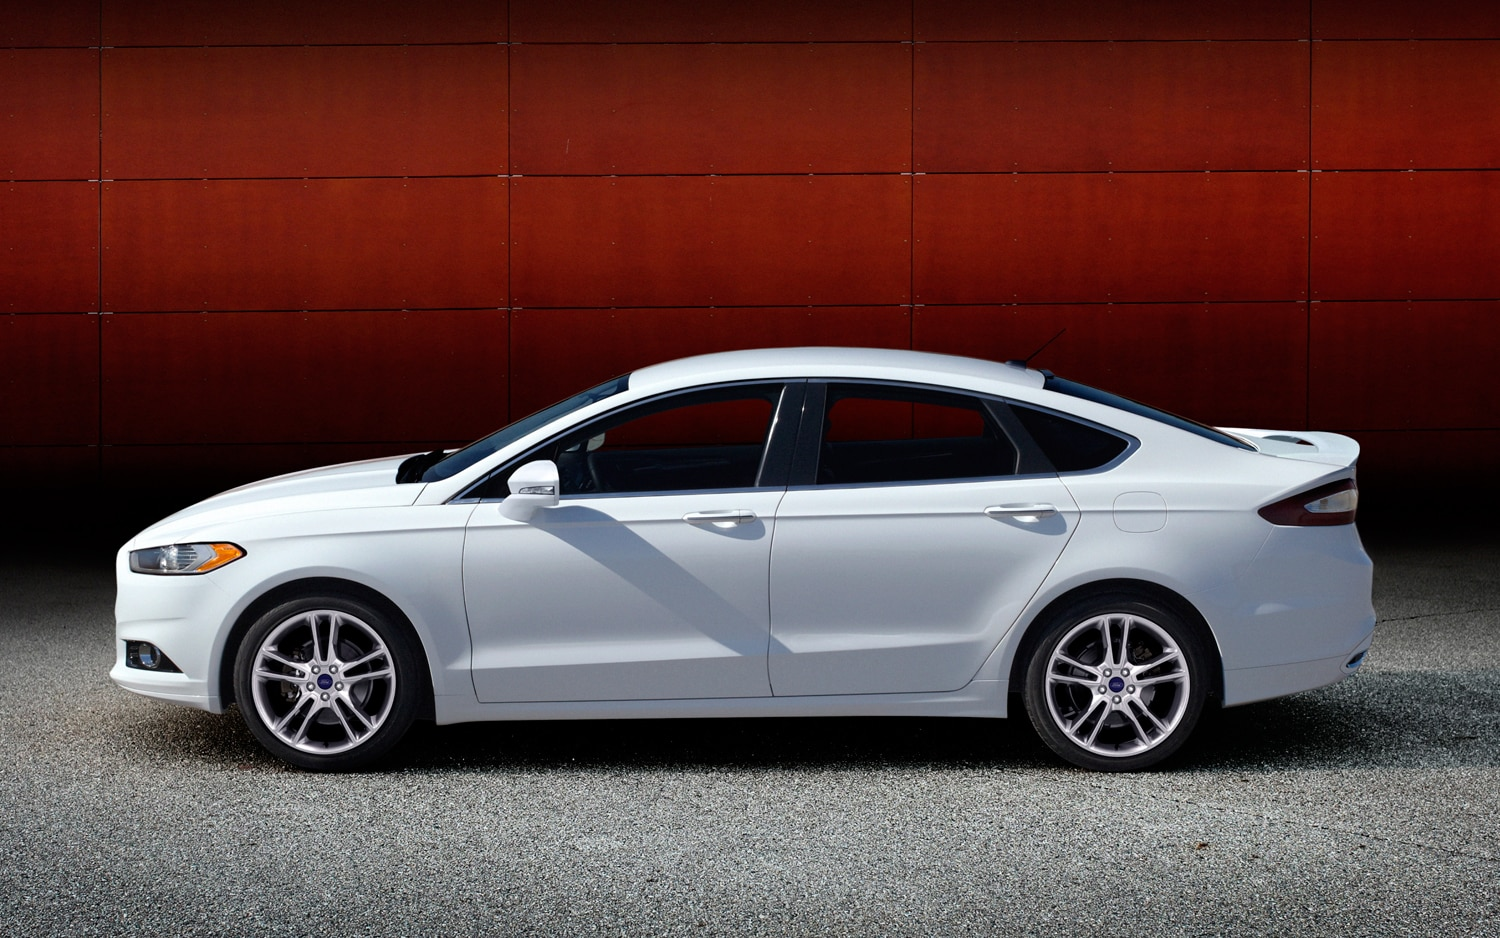 image gallery 2013 ford fusion. Cars Review. Best American Auto & Cars Review